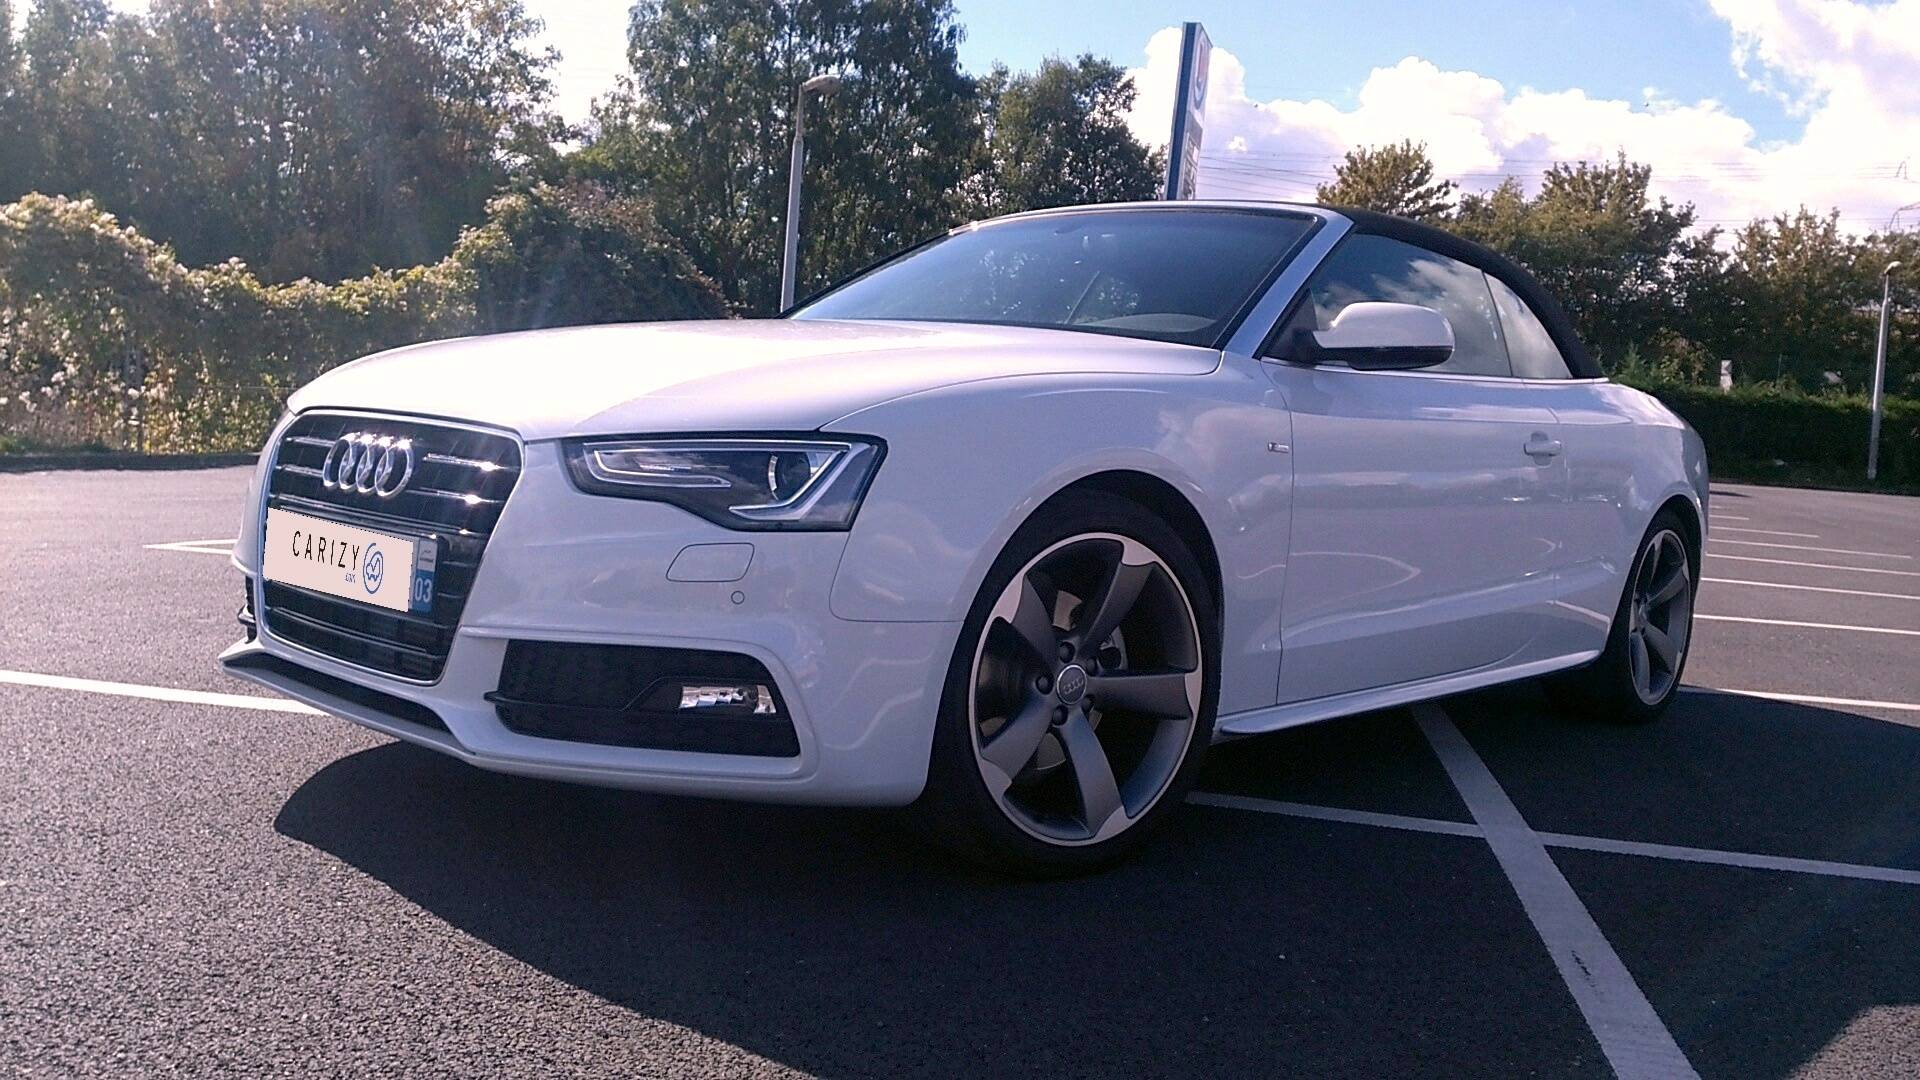 audi a5 d 39 occasion cabriolet 1 8 tfsi 170 s line athis mons carizy. Black Bedroom Furniture Sets. Home Design Ideas